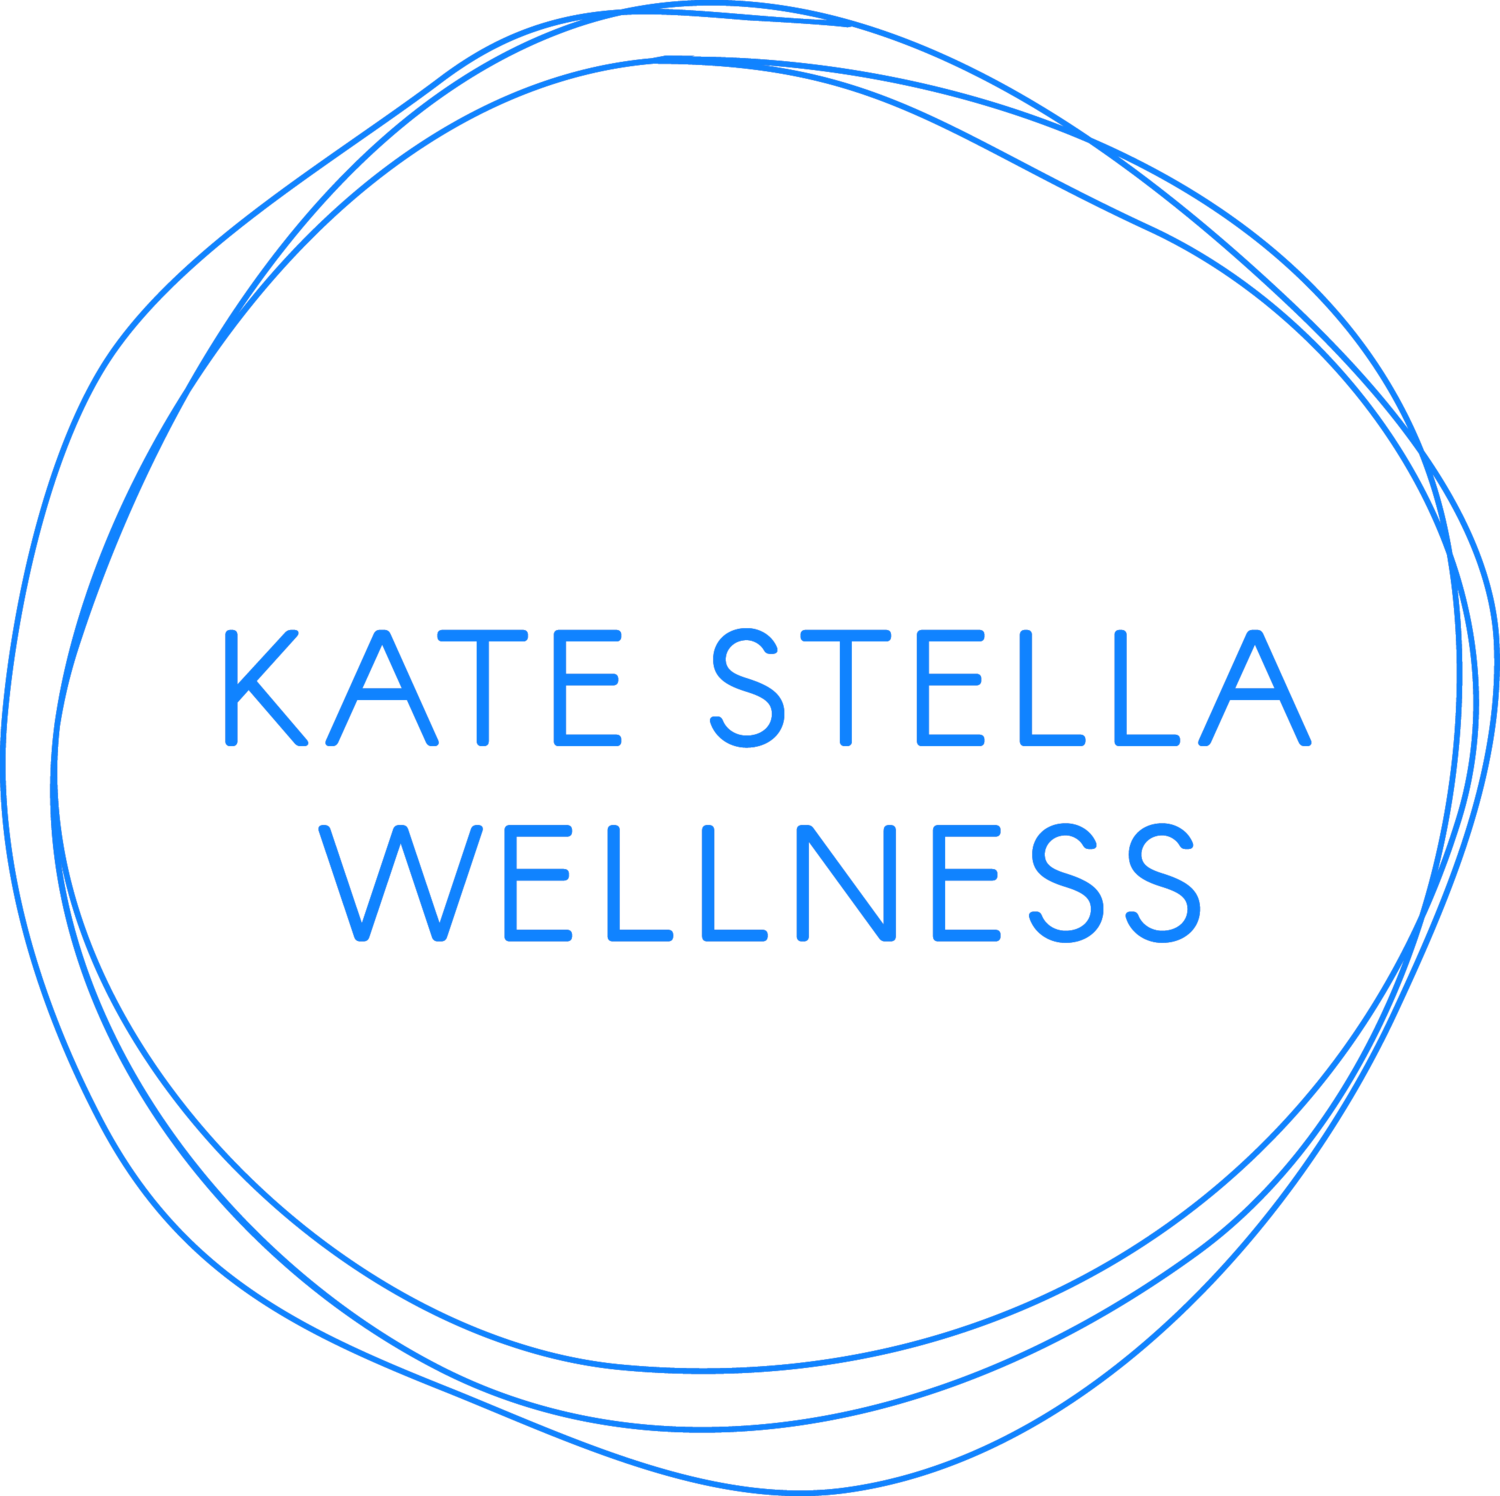 Kate Stella Wellness